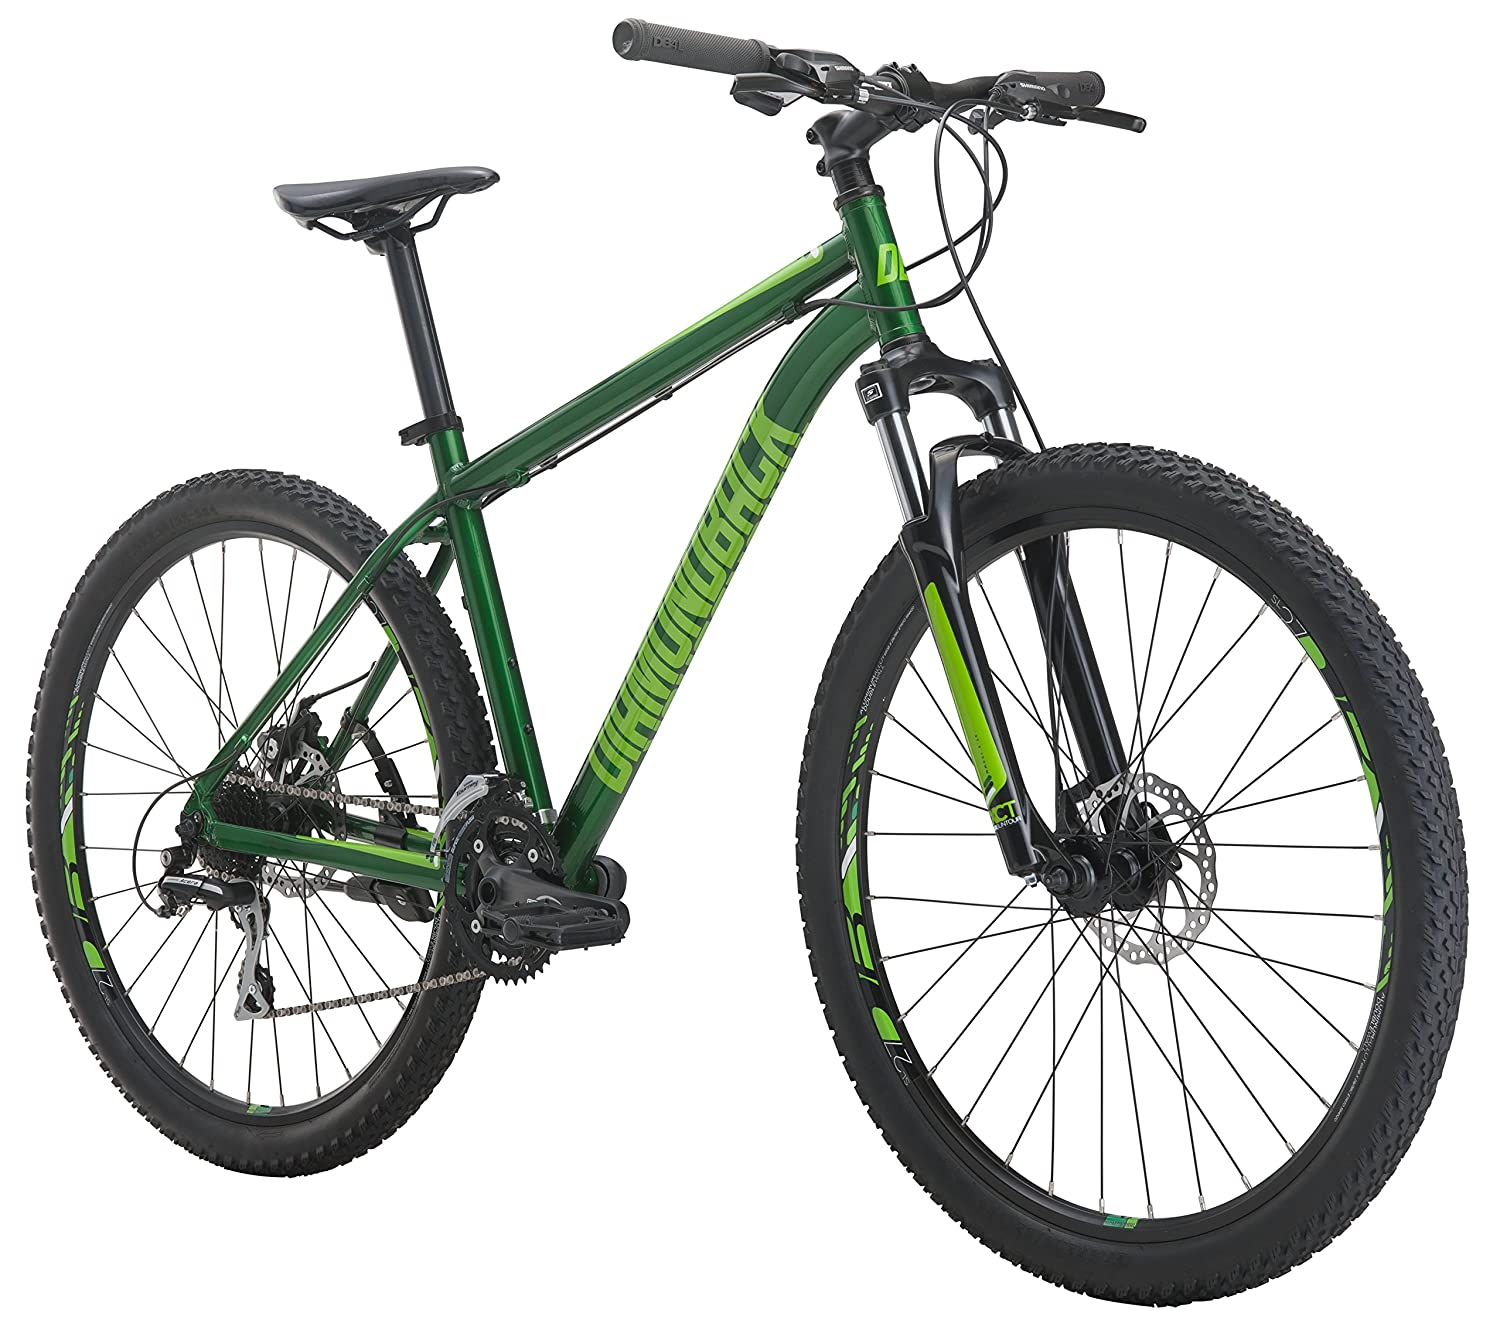 3c340063a19 Diamondback bikes are consistently some of the best ones entry level bikes  available like you already know. They also have a good guarantee.